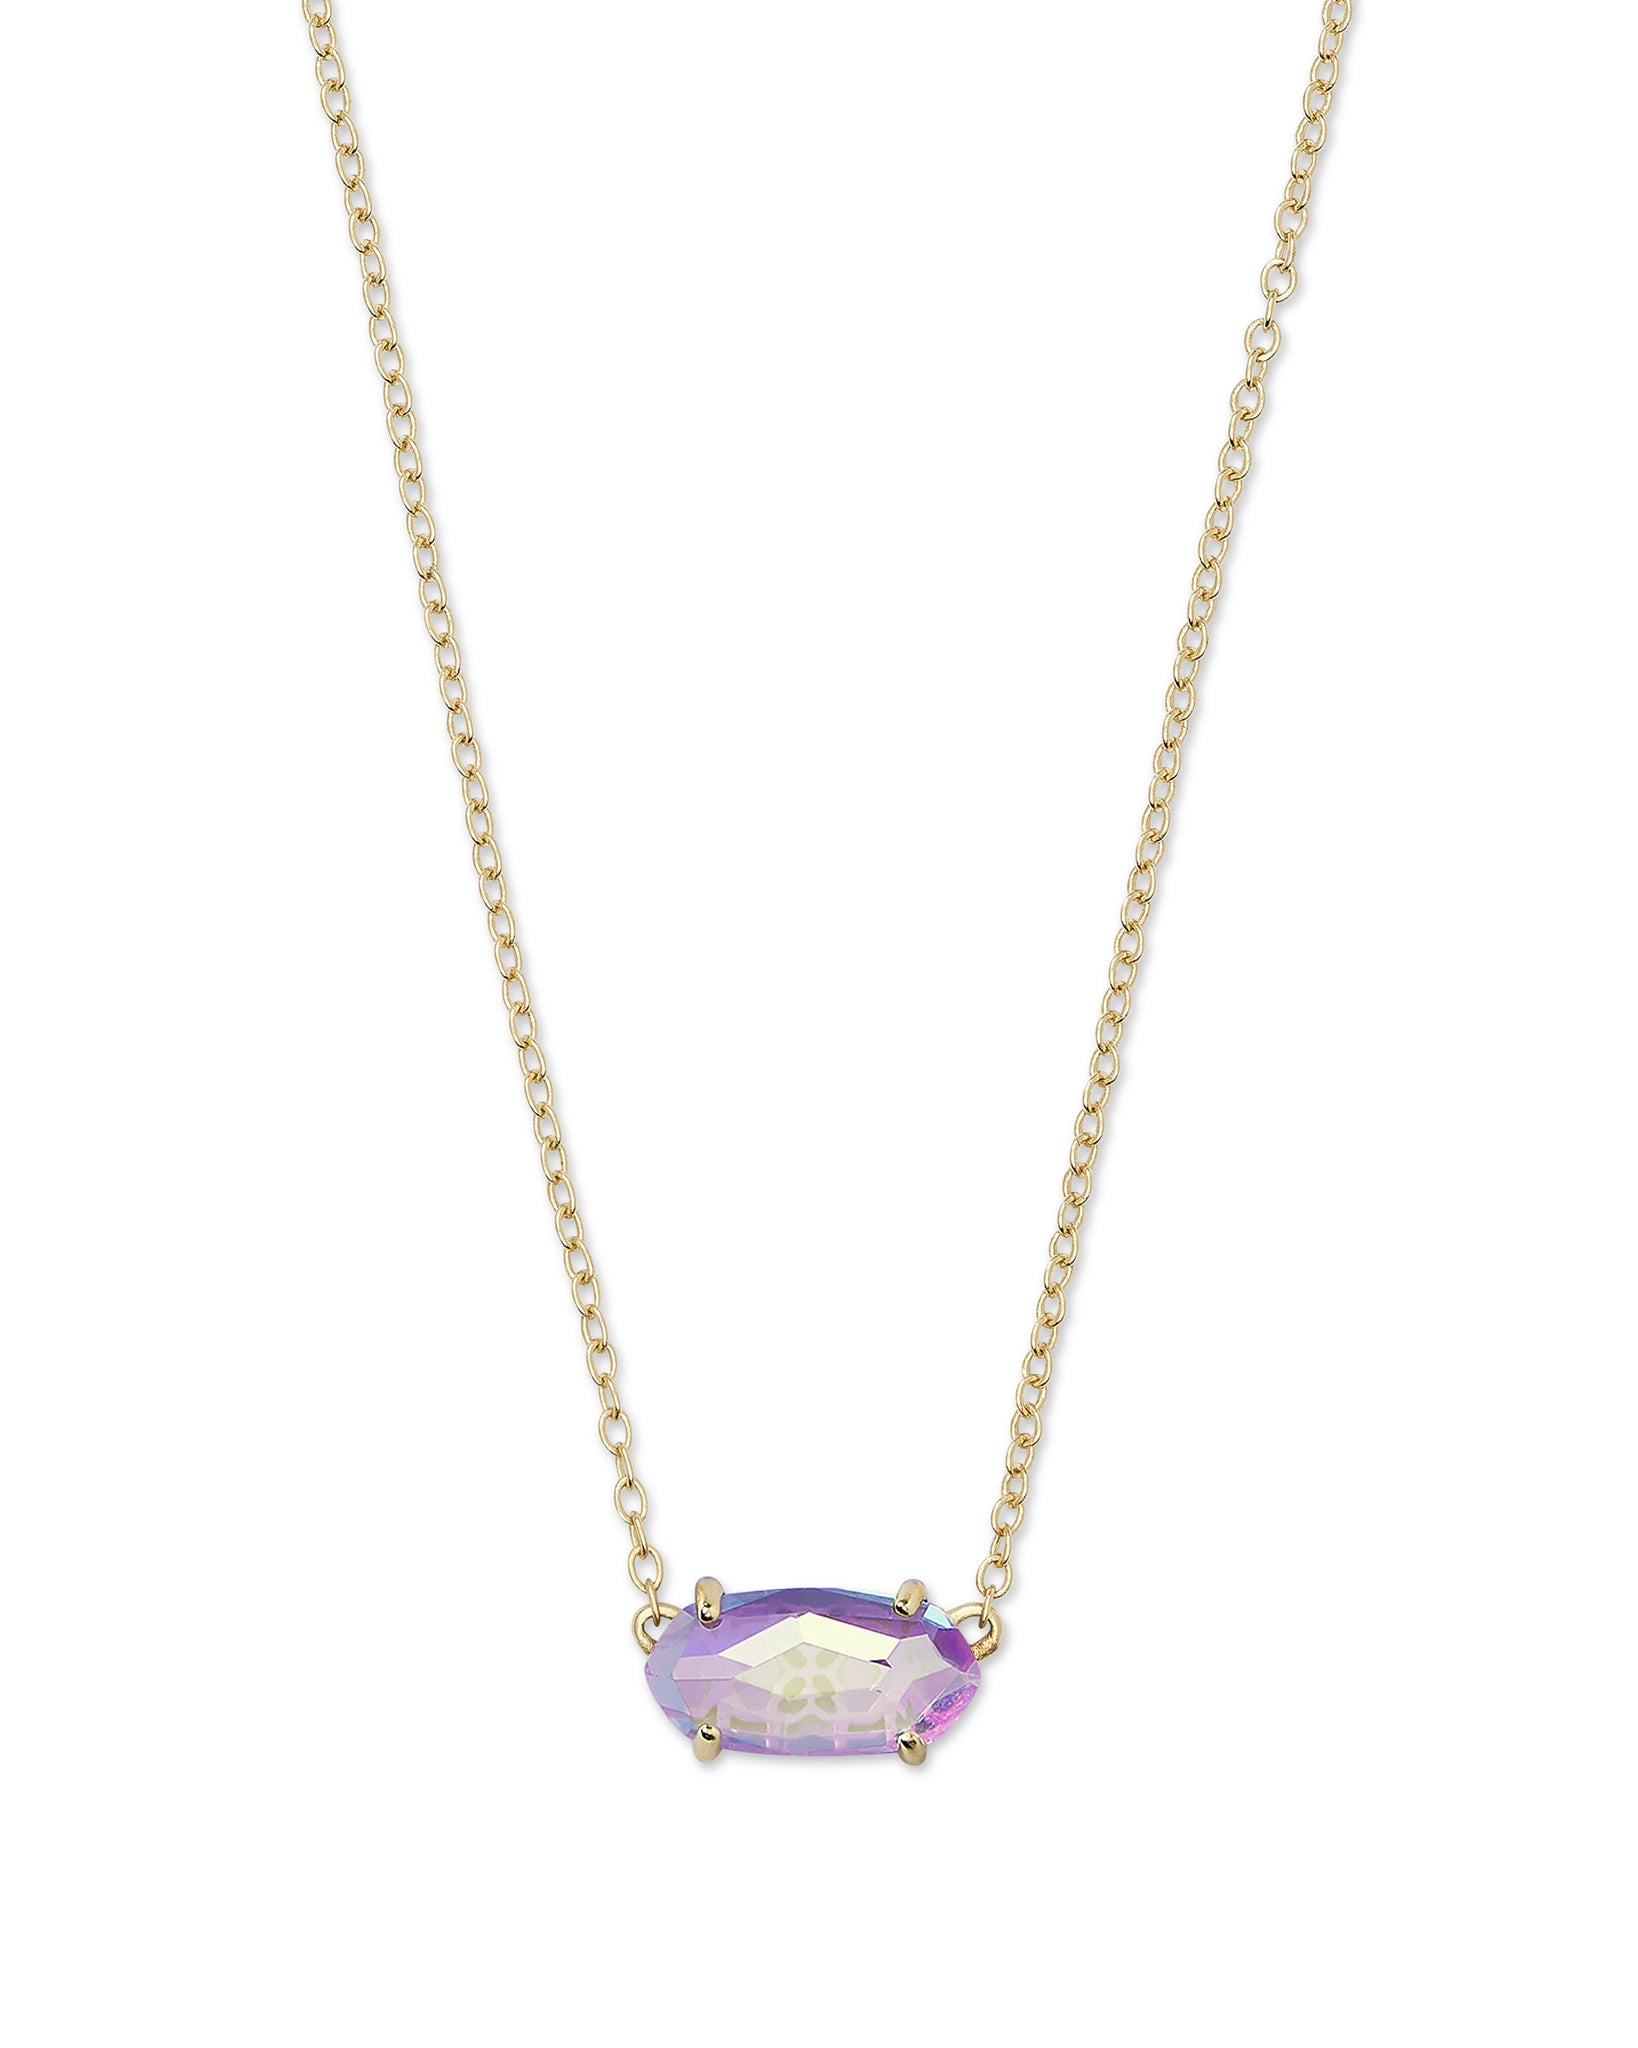 Kendra Scott Ever Necklace - Showroom56